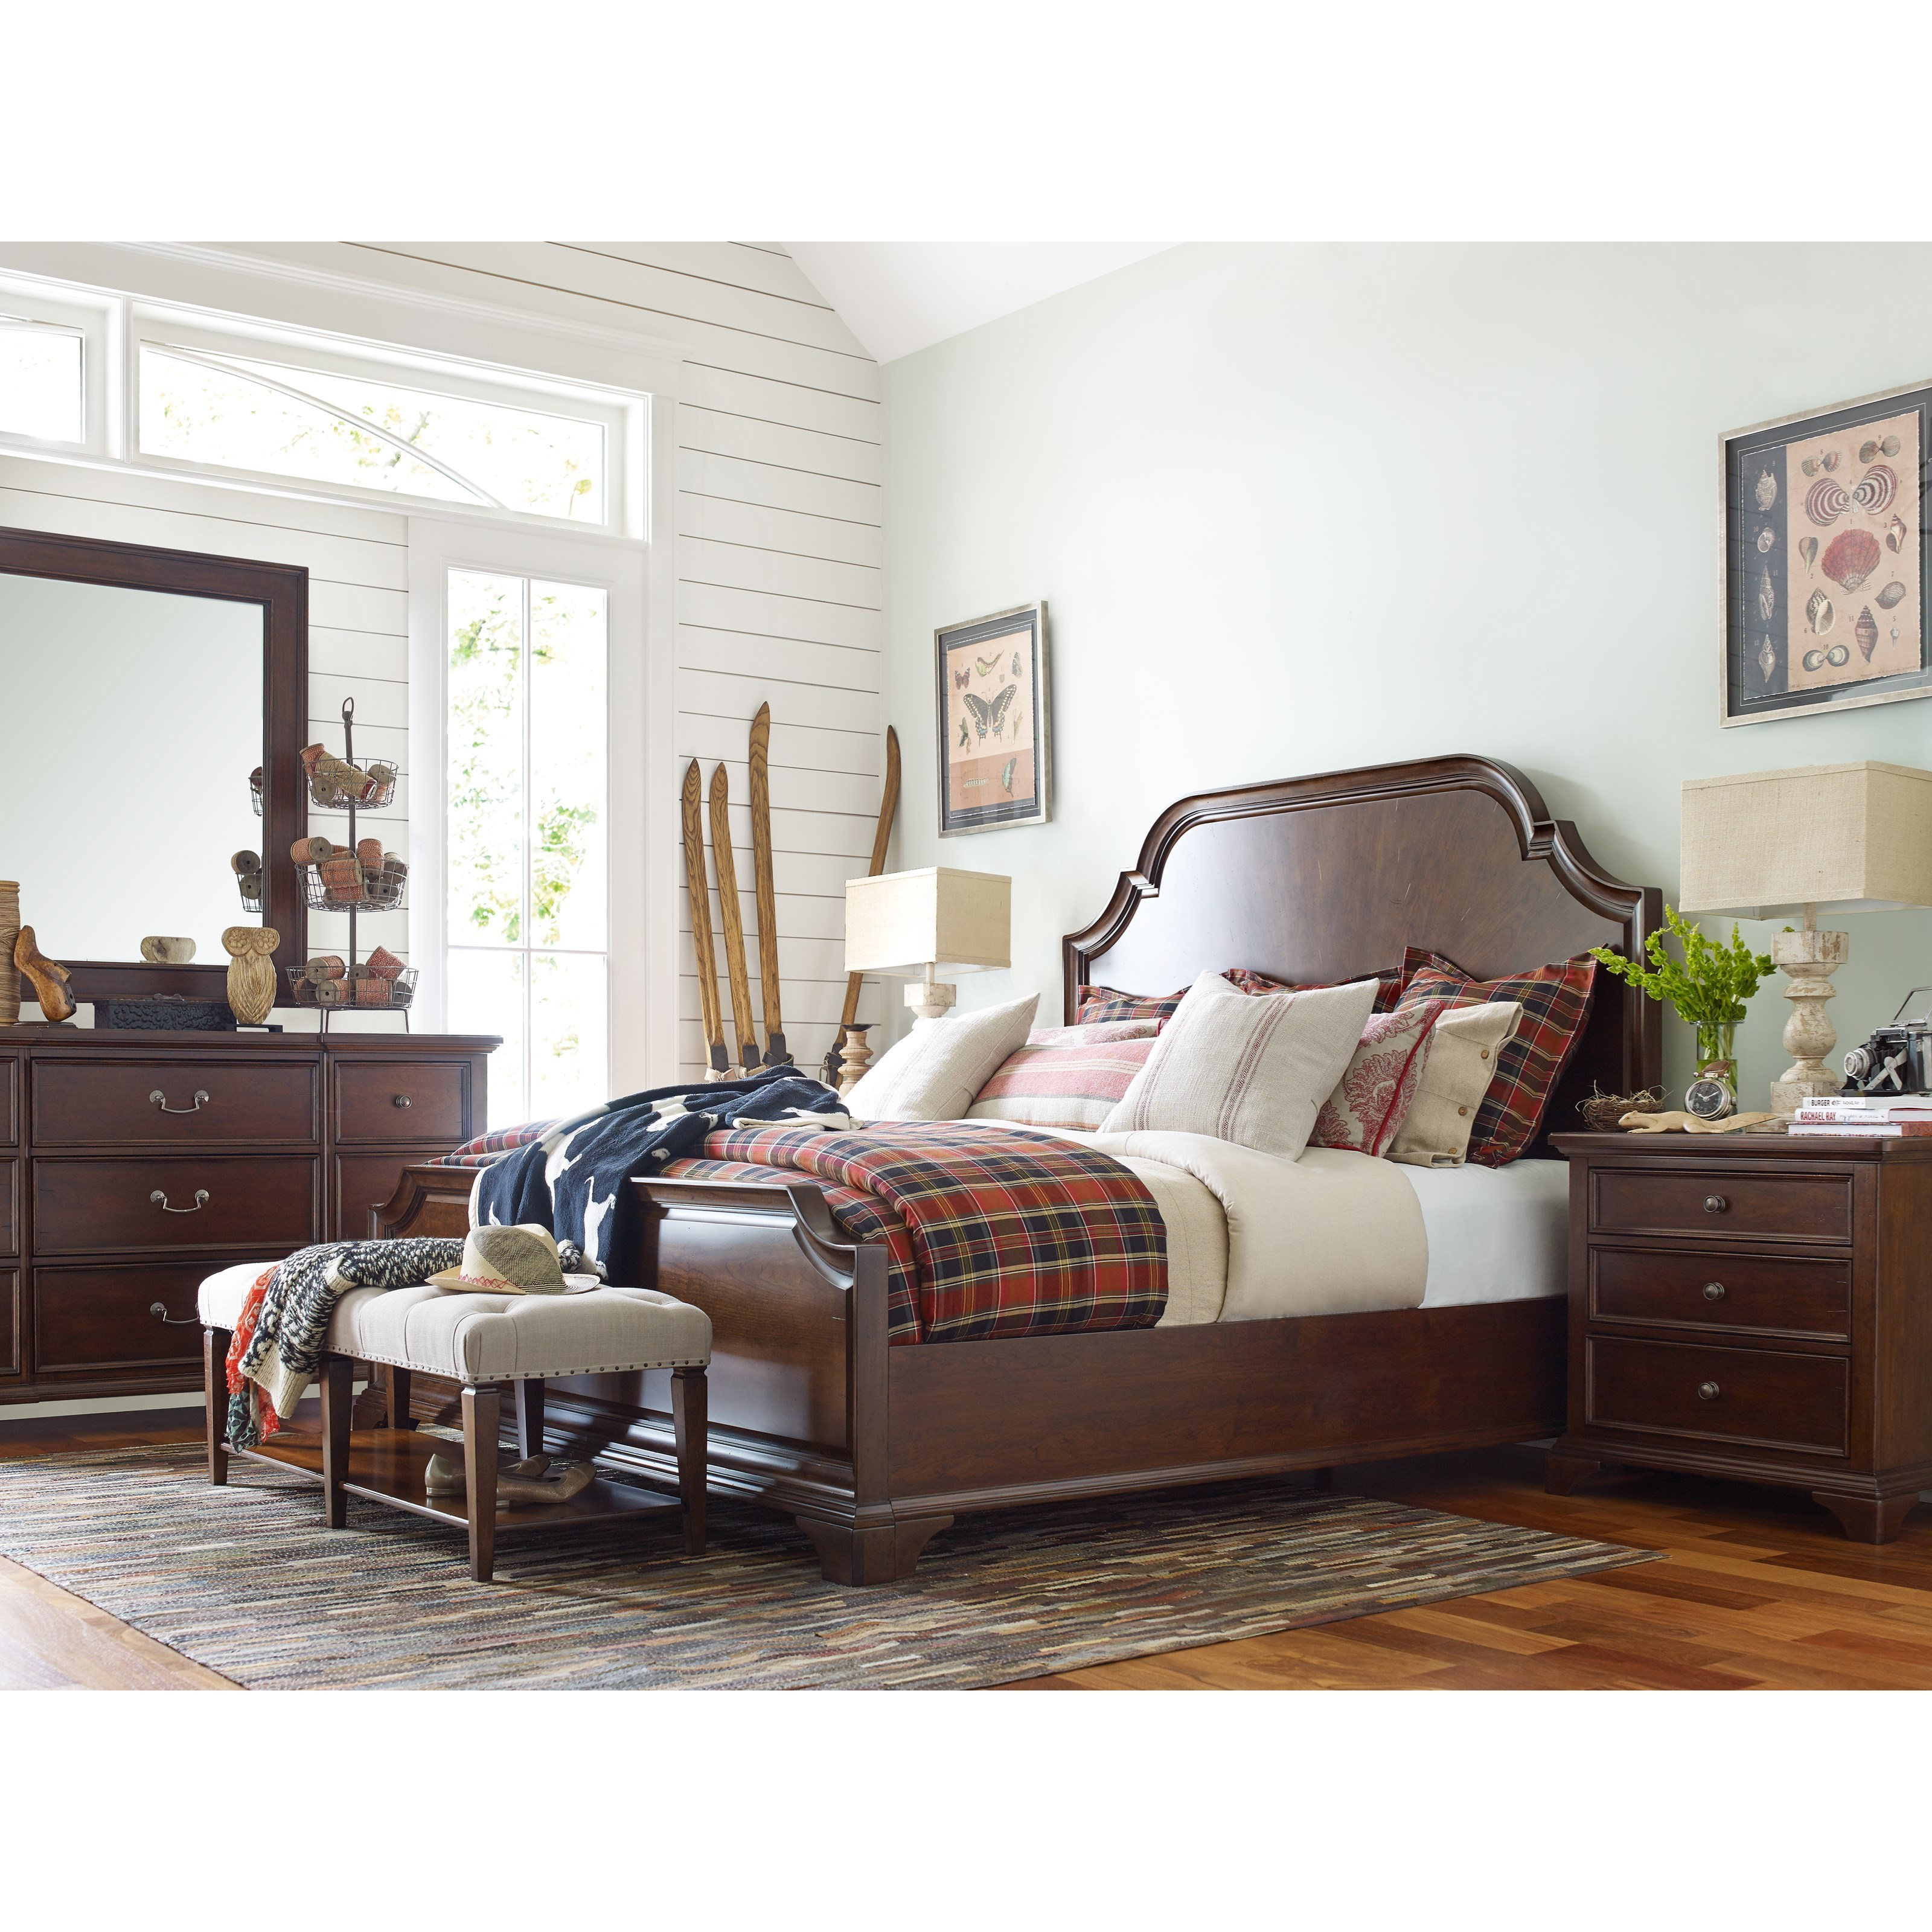 Rachael Ray Home by Legacy Classic Upstate Queen Bedroom Group - Item Number: 6040 Q Bedroom Group 1